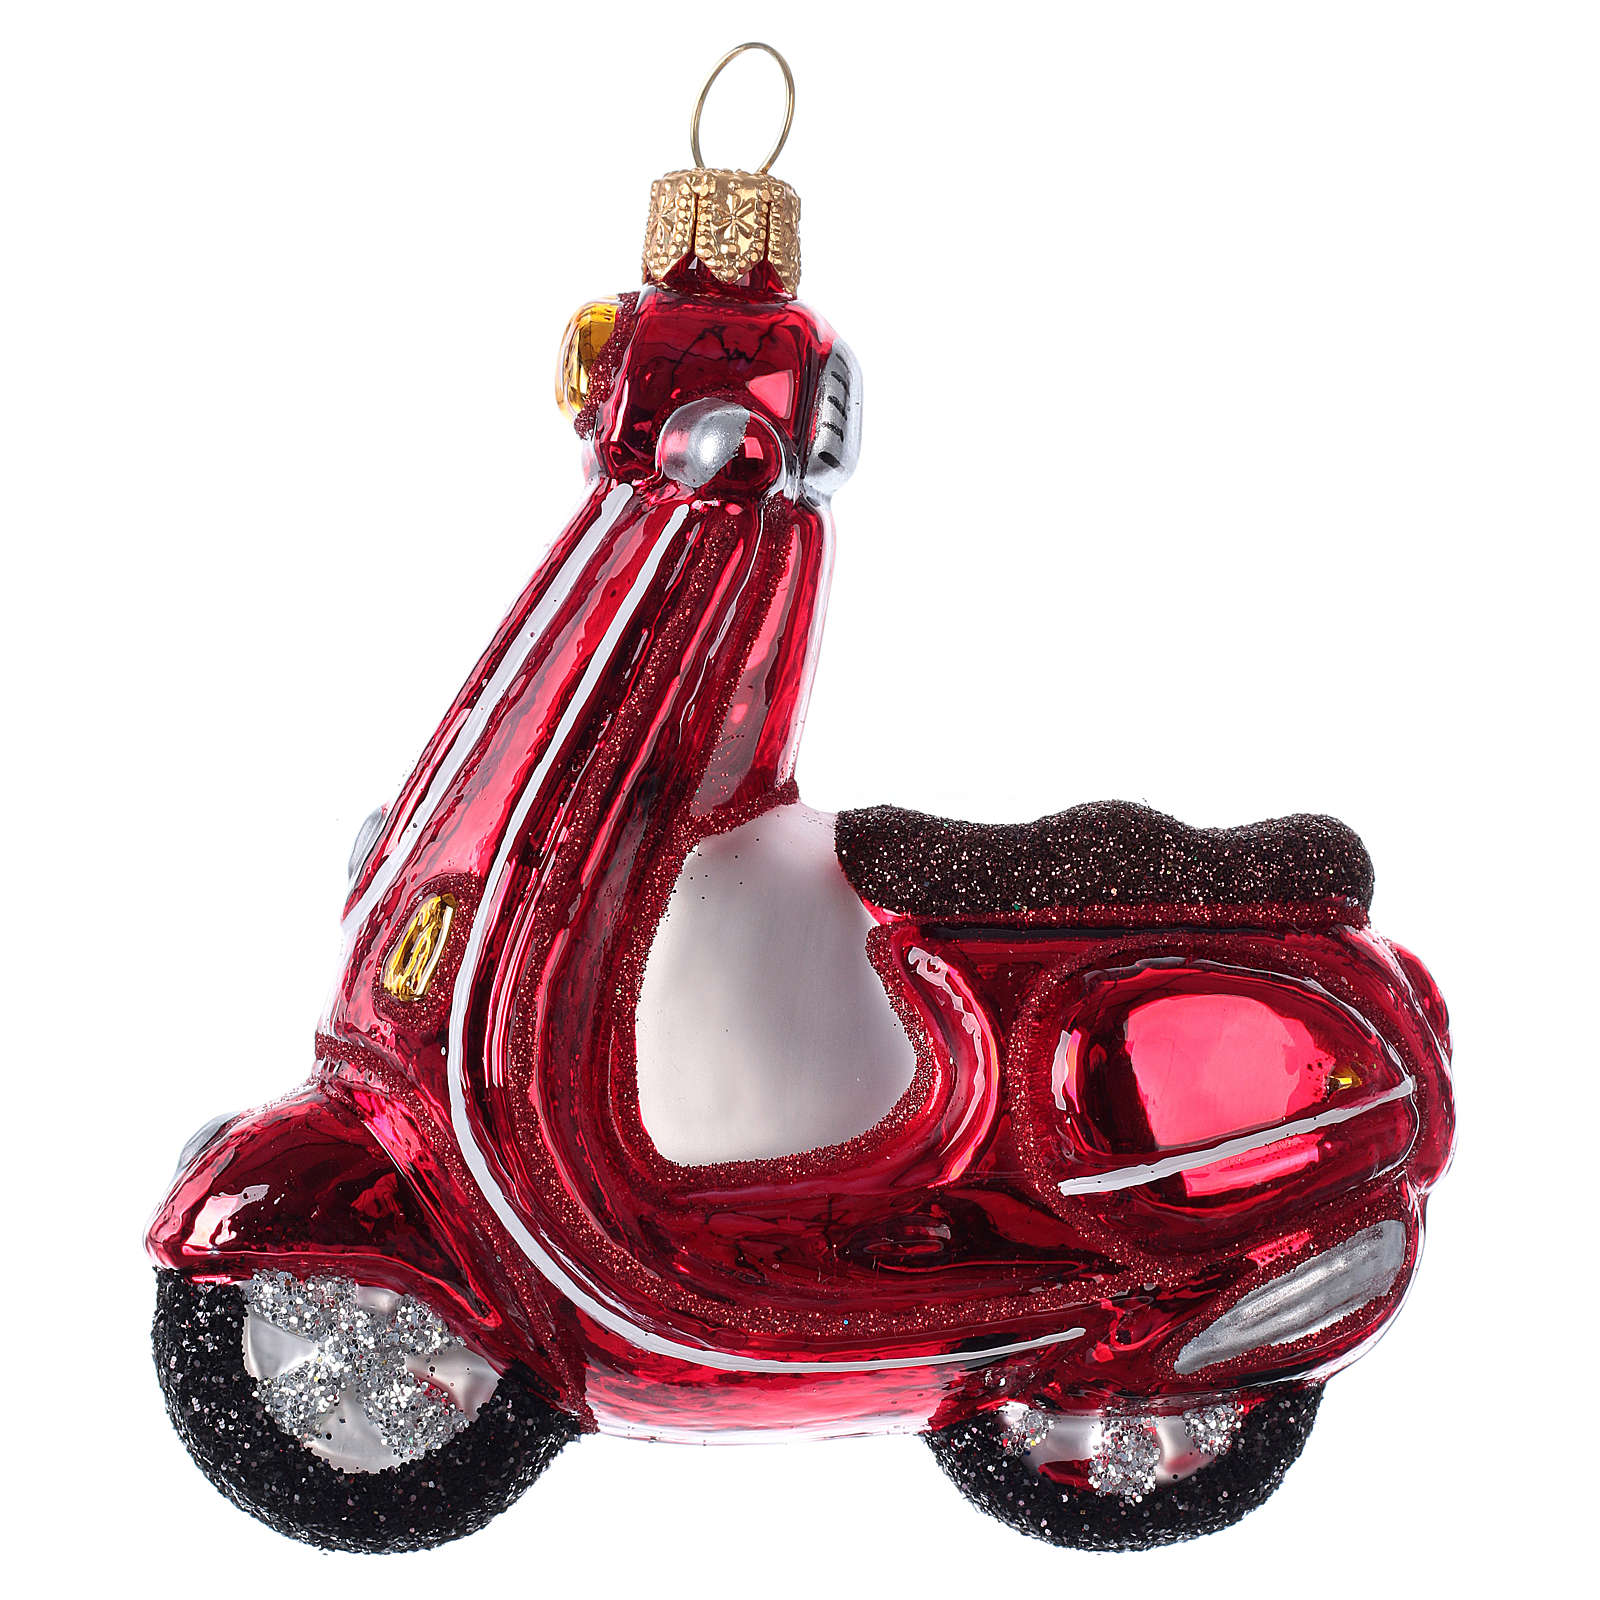 Motor scooter in blown glass for Christmas Tree 4